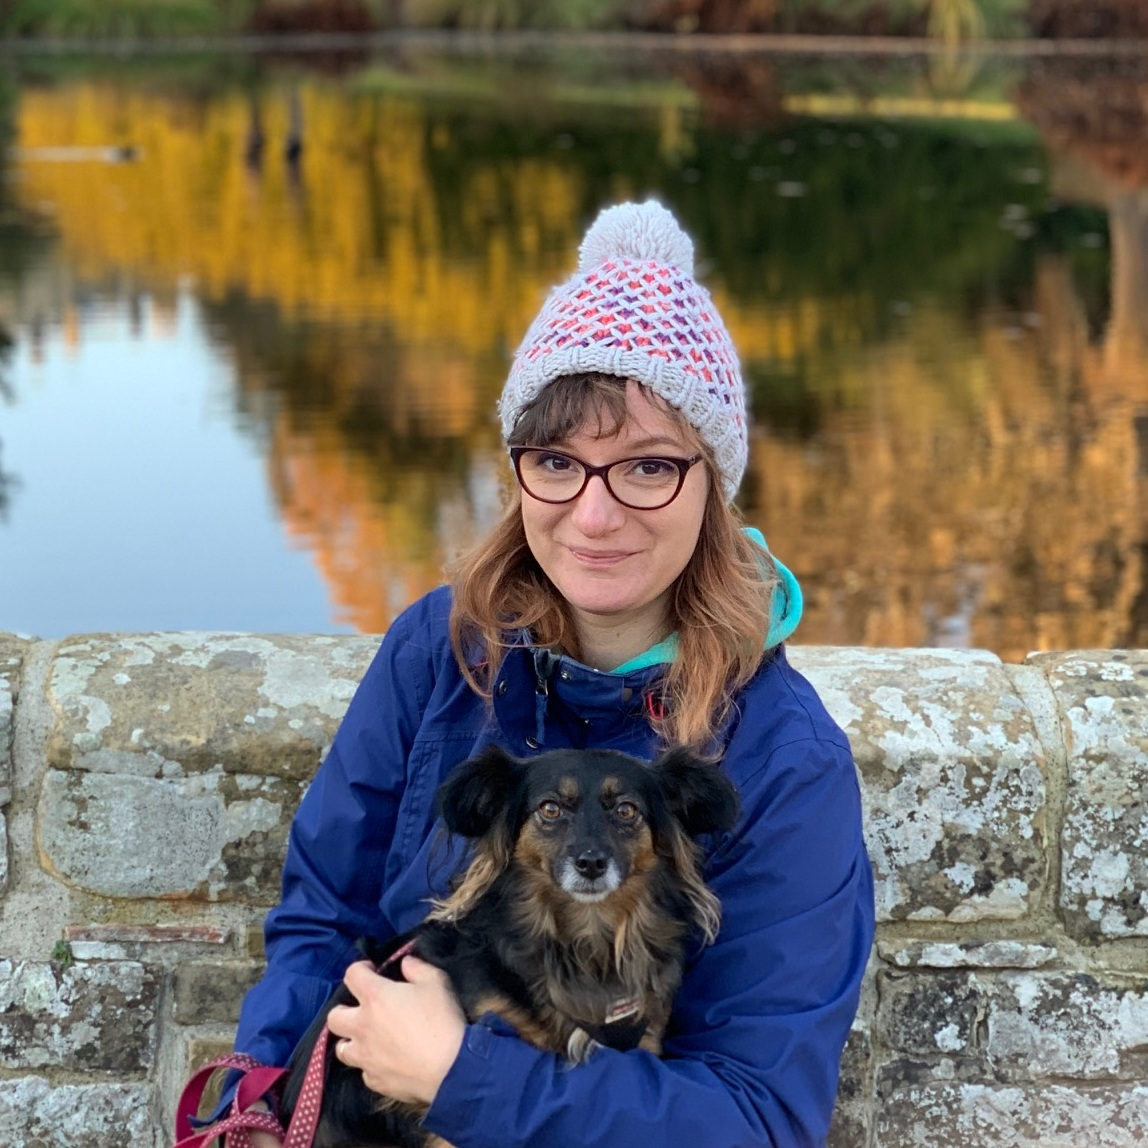 CLYO PARECCHINI Live Well Project Coordinator   Clyo has an artistic background and a strong passion for gardening, recently she has summed her interests up to work in local community projects, supporting Easy London community gardens and promoting healthy food and local products.